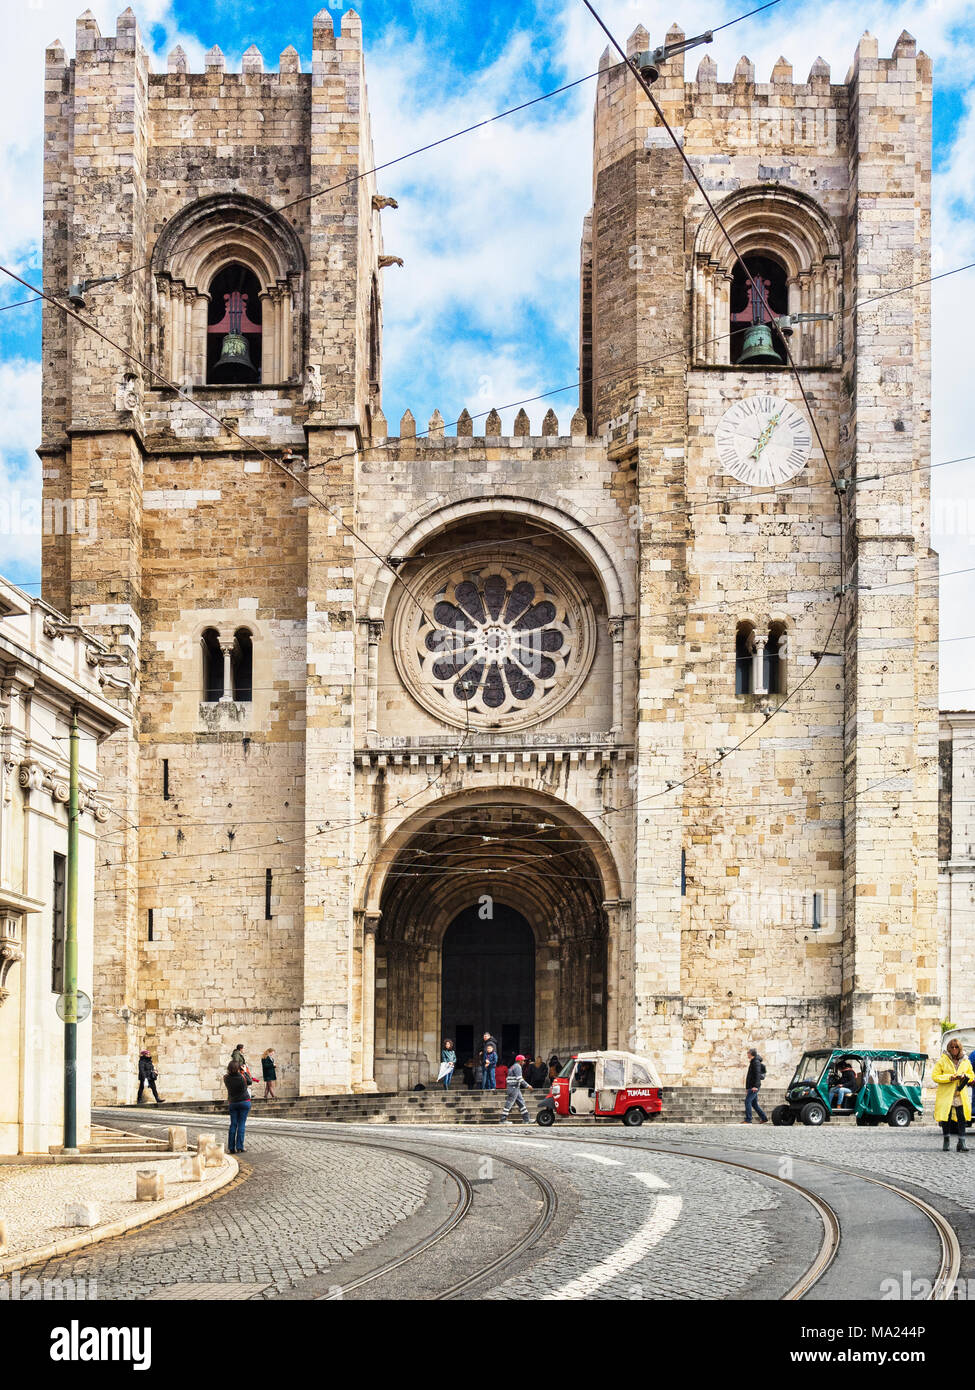 1 March 2018: Lisbon, Portugal, The Cathedral, in Lisbon Old Town, with tuk tuks and tourists outside. - Stock Image